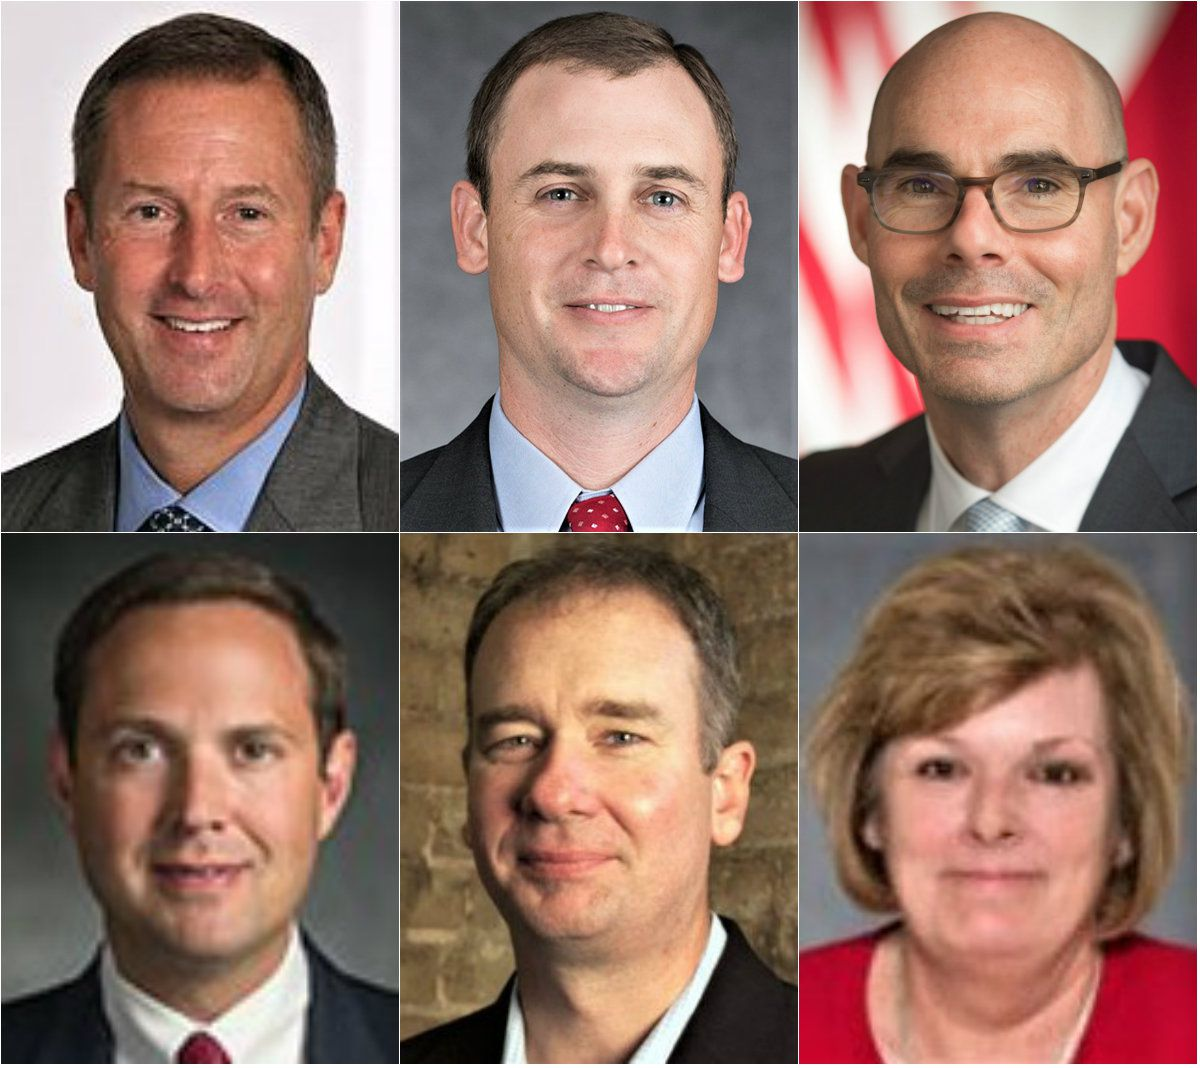 Clockwise from top left: Rep. Jim Murphy, R-Houston; Rep. Andy Murr, R-Junction; House Speaker Dennis Bonnen of Angleton; Rep. Stephanie Klick, R-Fort Worth Empower Texans CEO Michael Quinn Sullivan; and Rep. Dustin Burrows, R-Lubbock